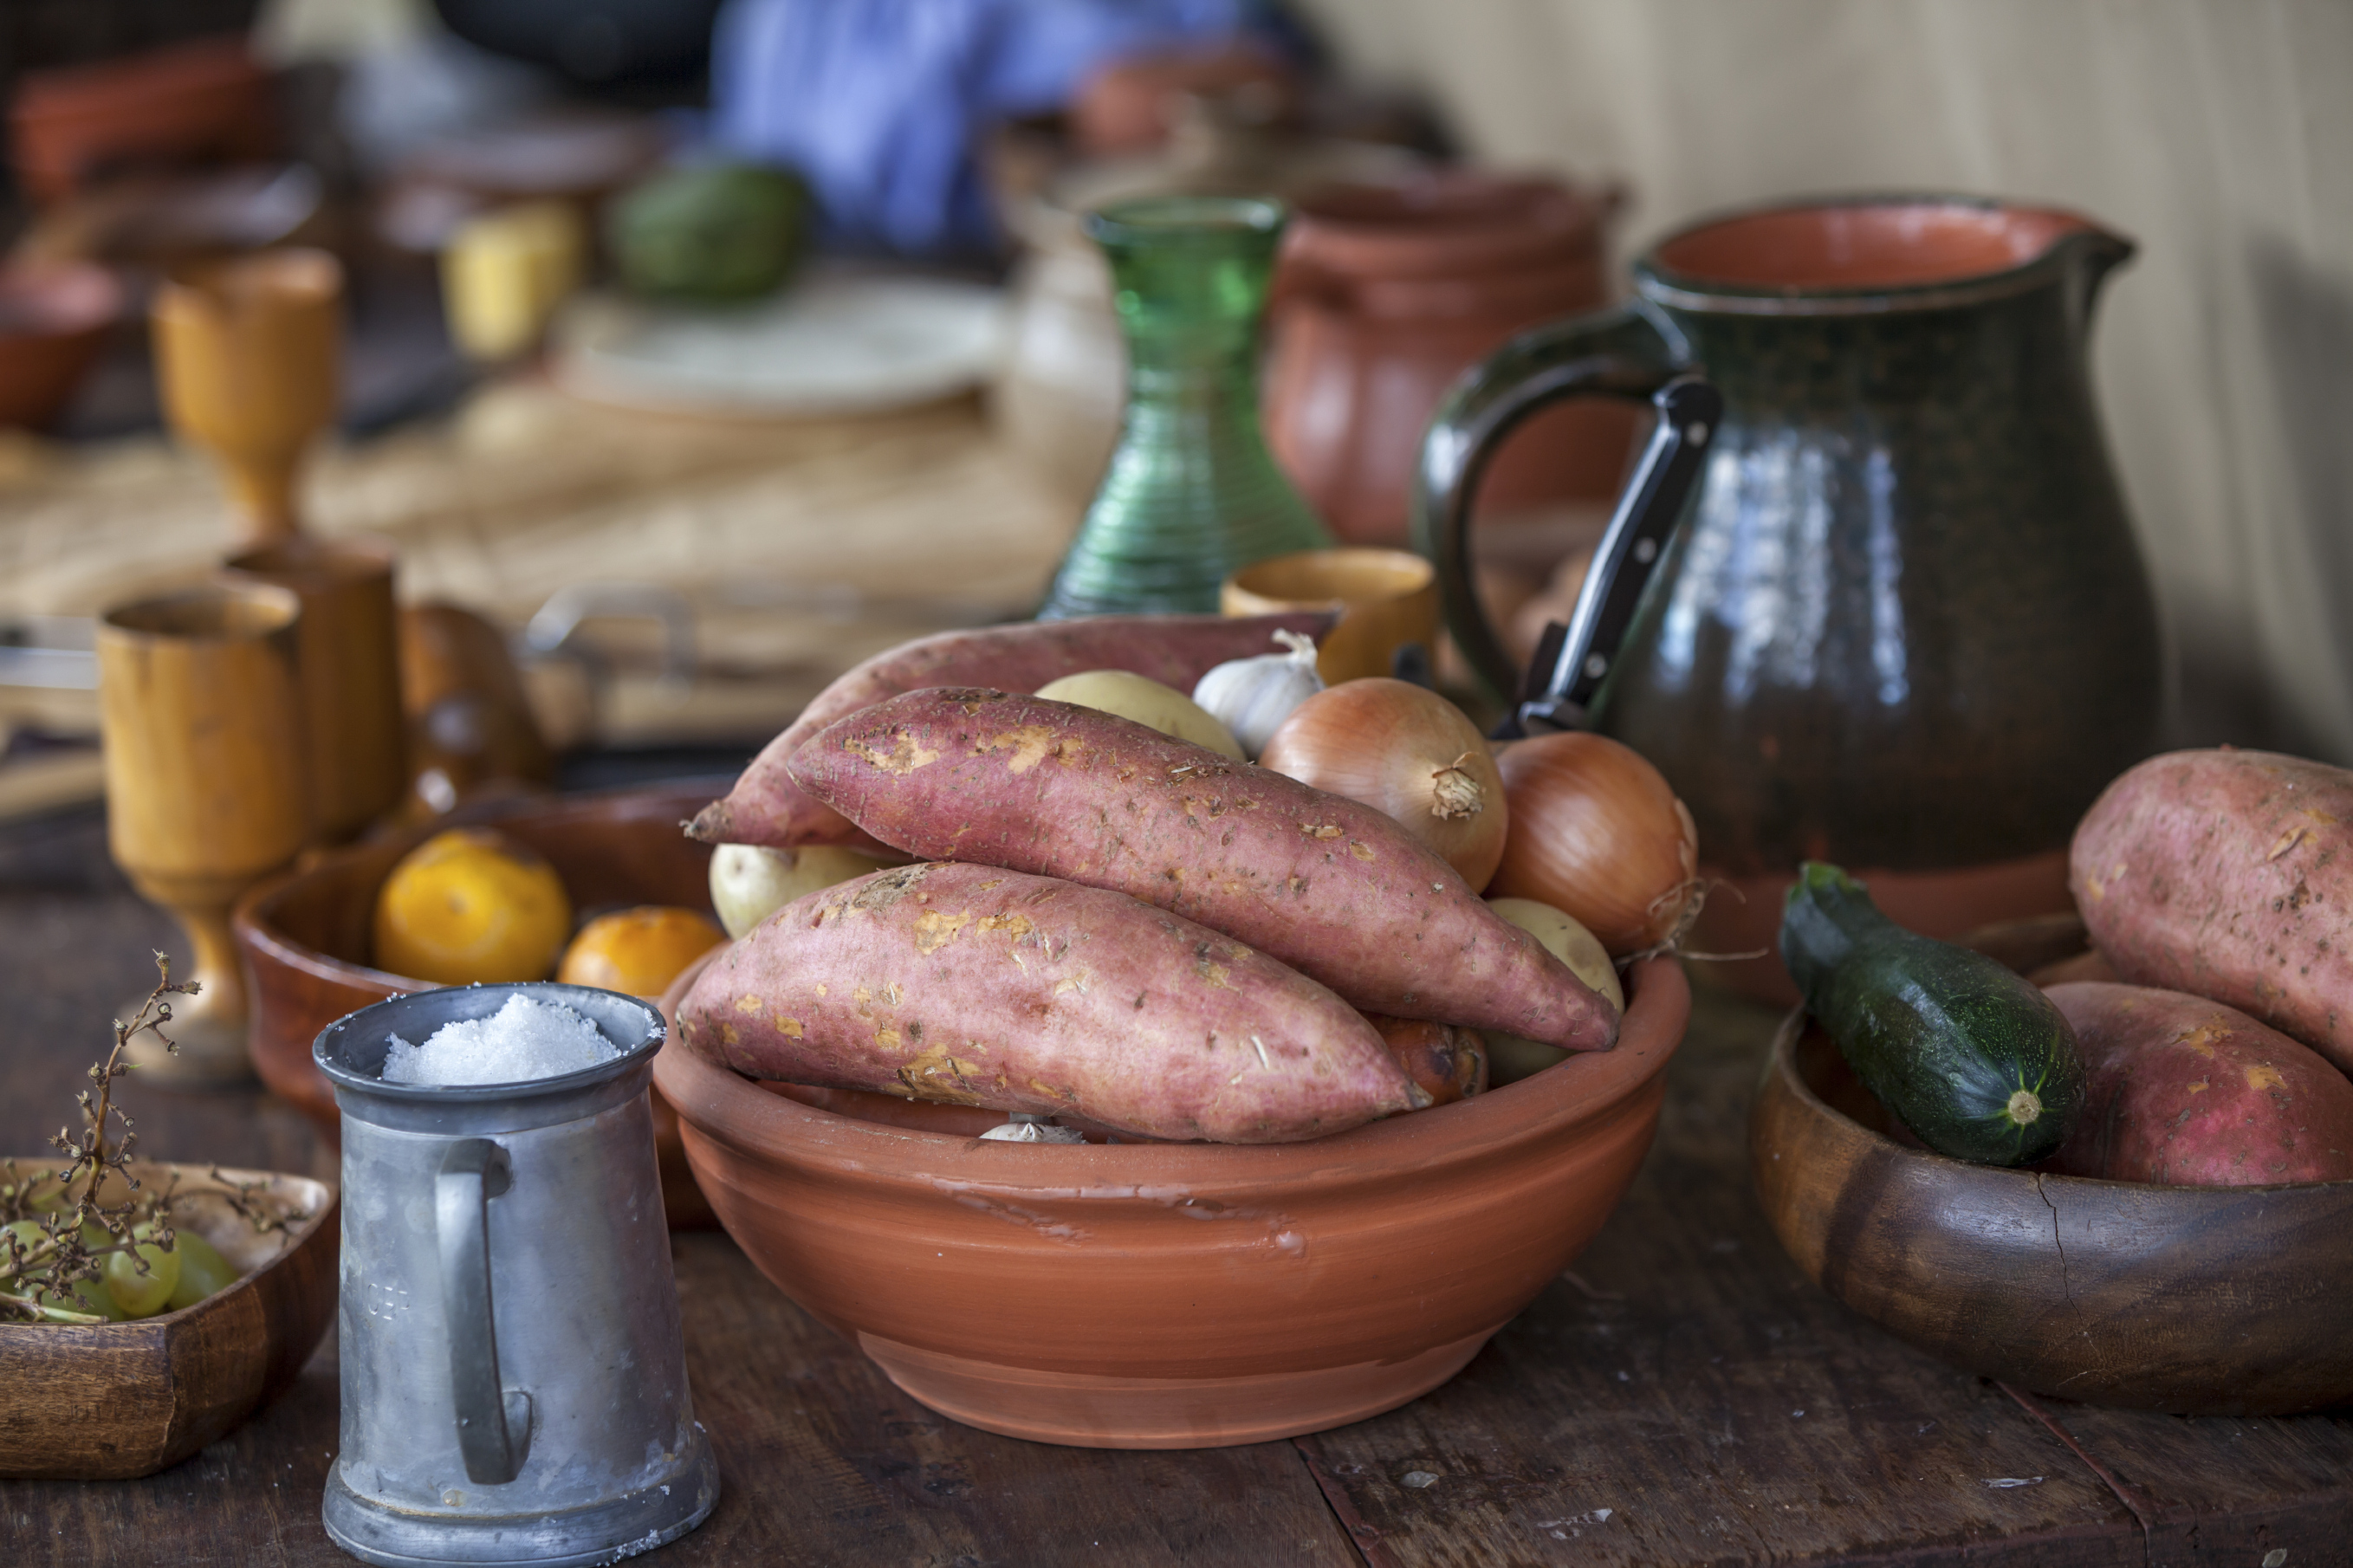 Are you considering changing your diet in the spring? Find inspiration in the Czech Middle Ages.